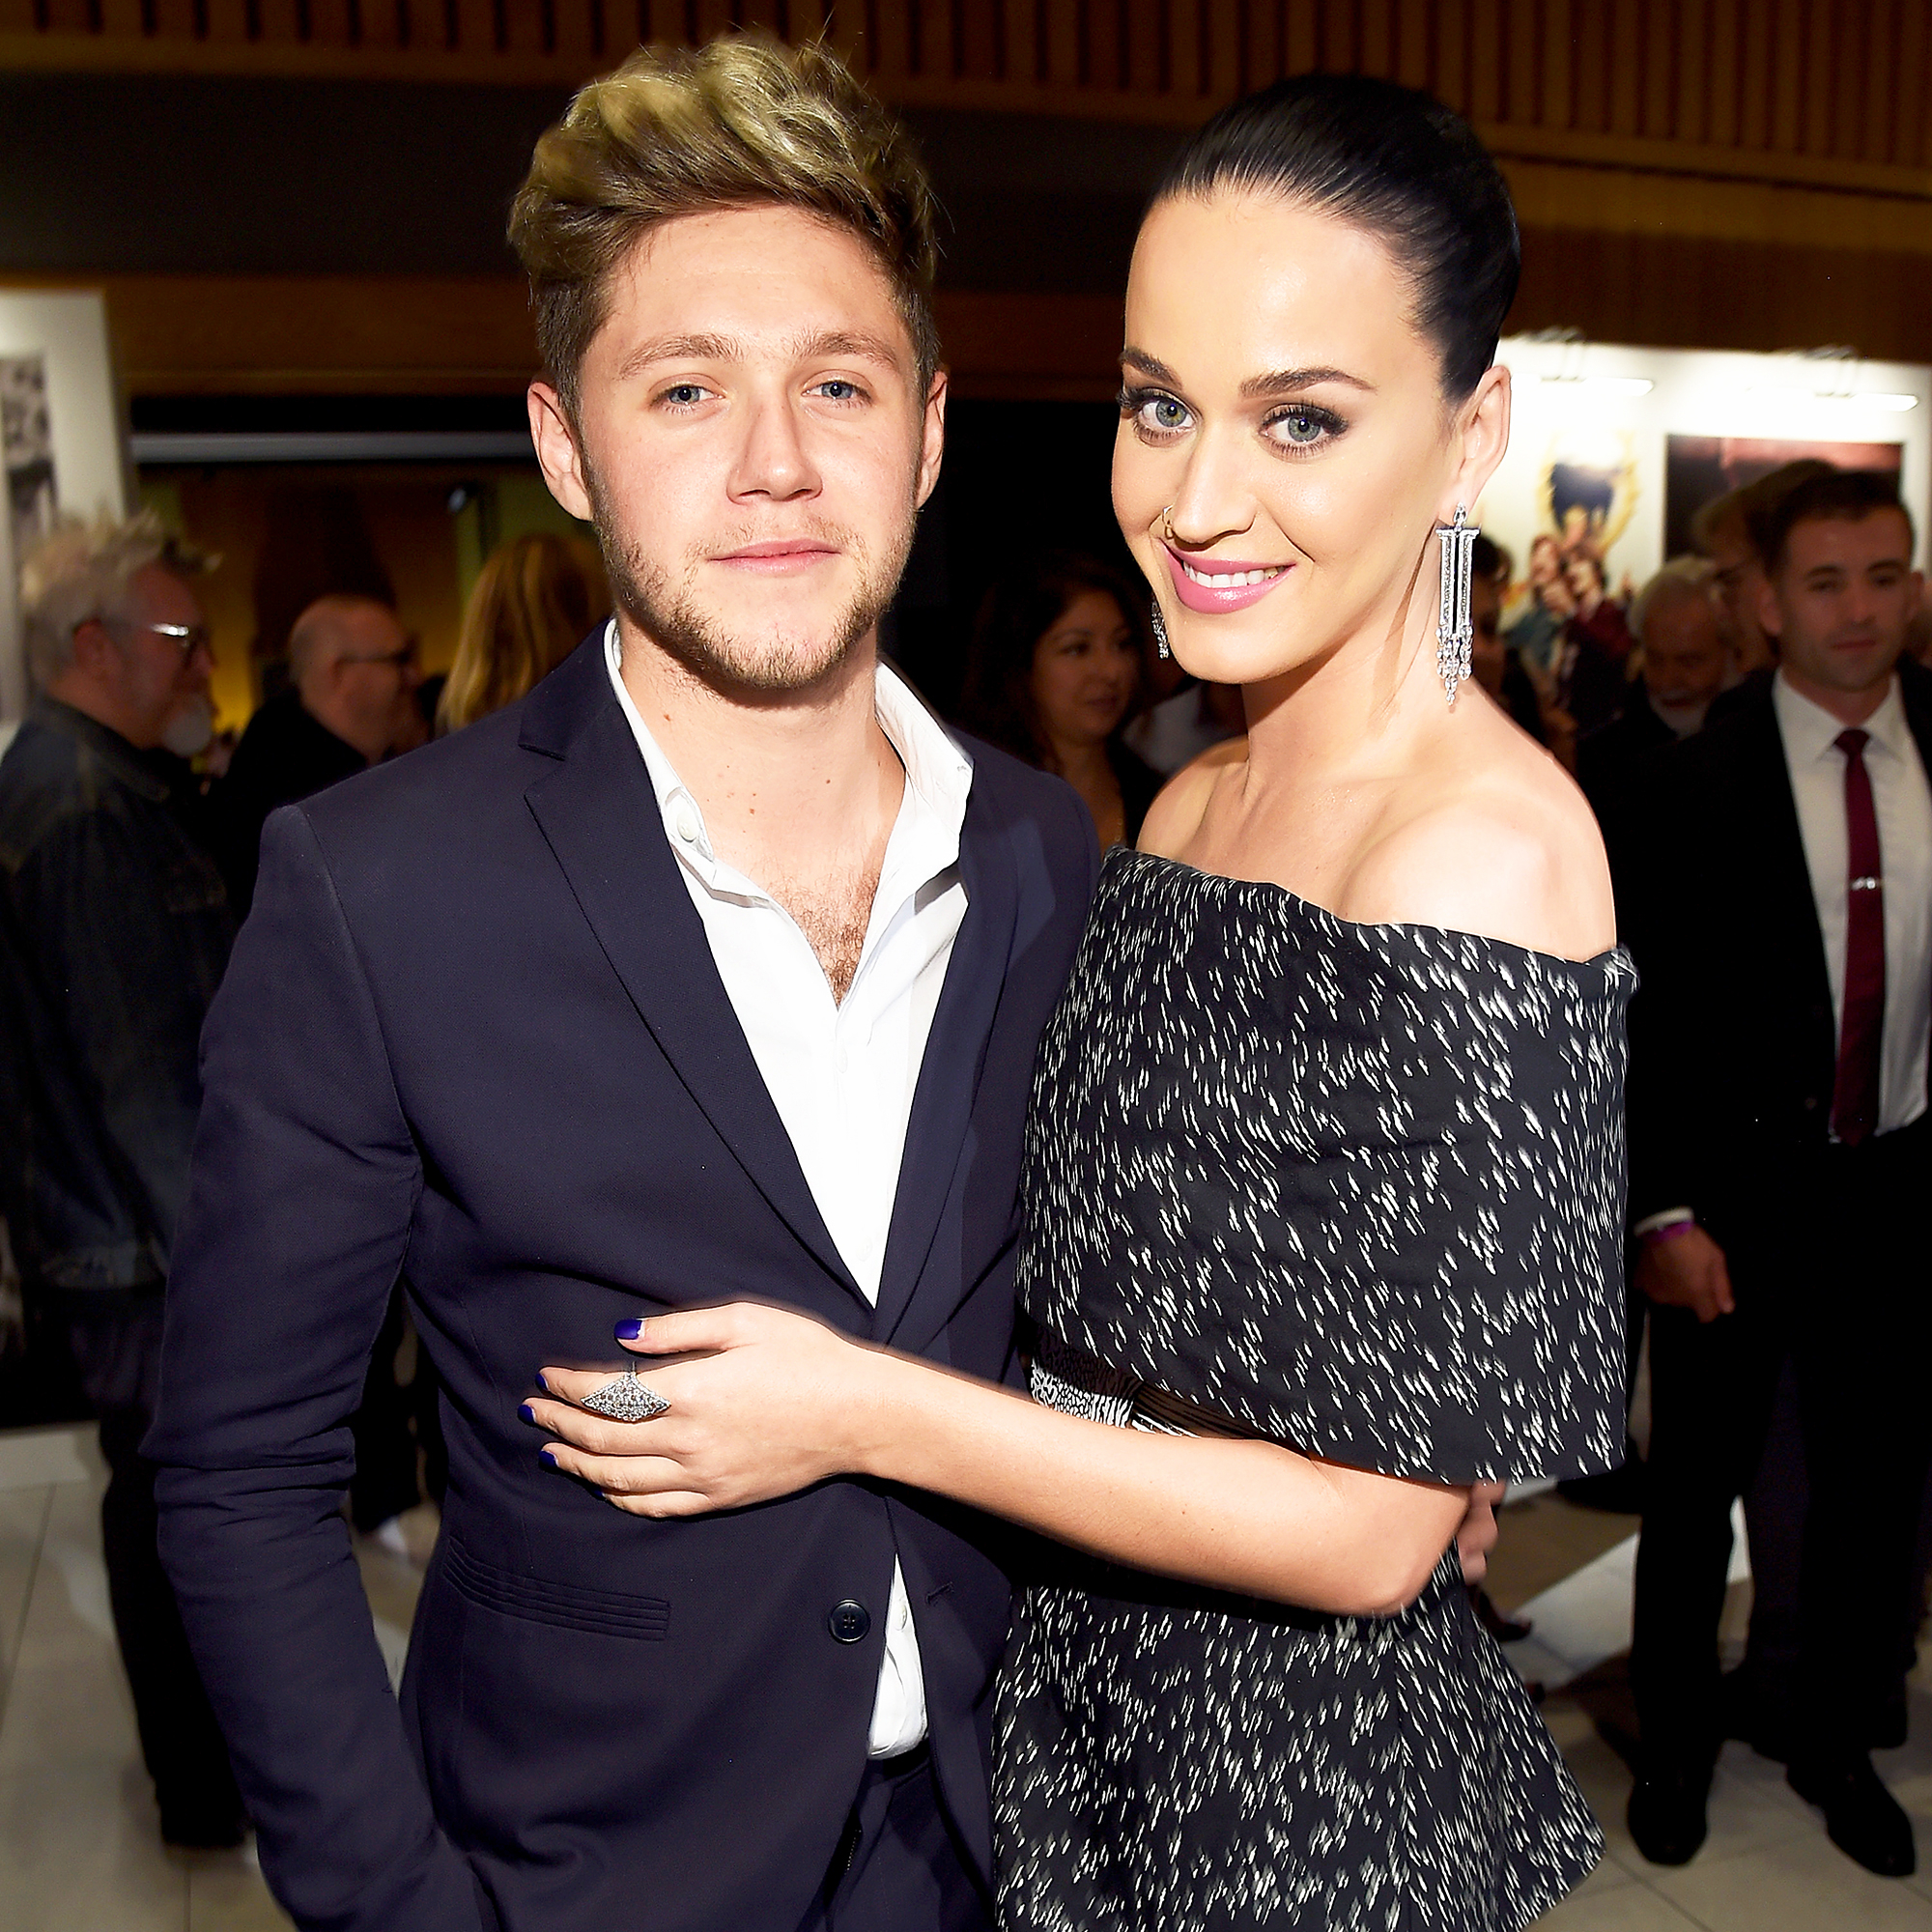 Niall Horan and Katy Perry